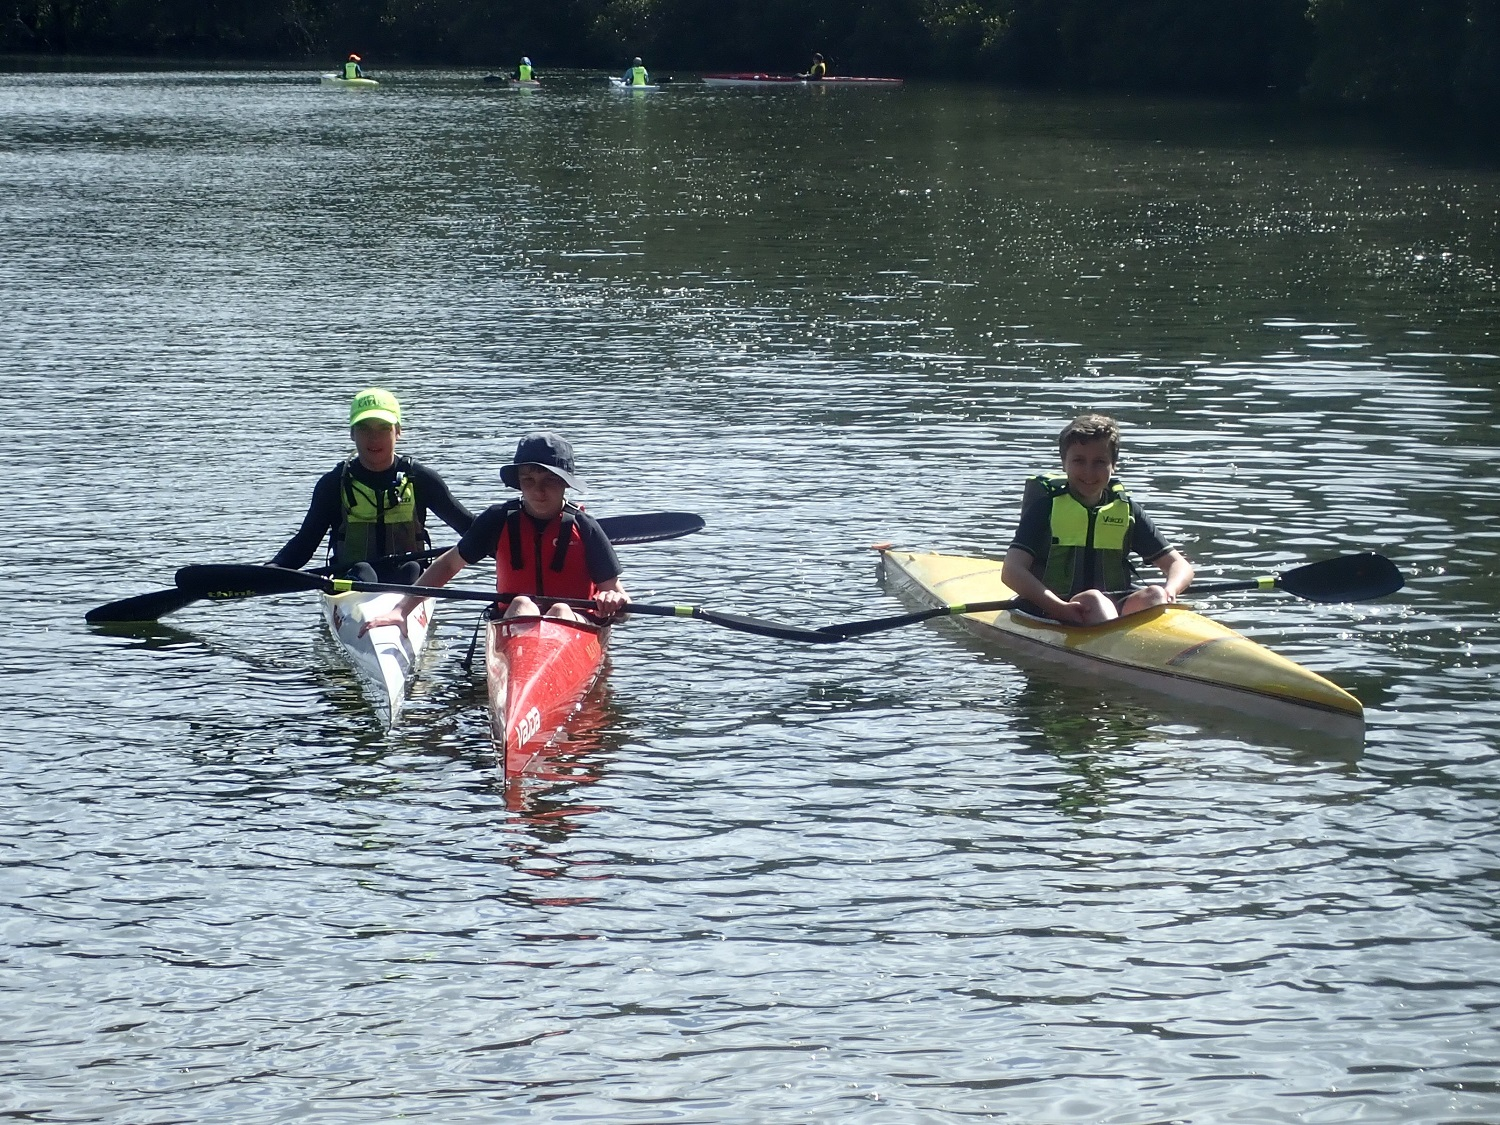 Junior paddlers on the water